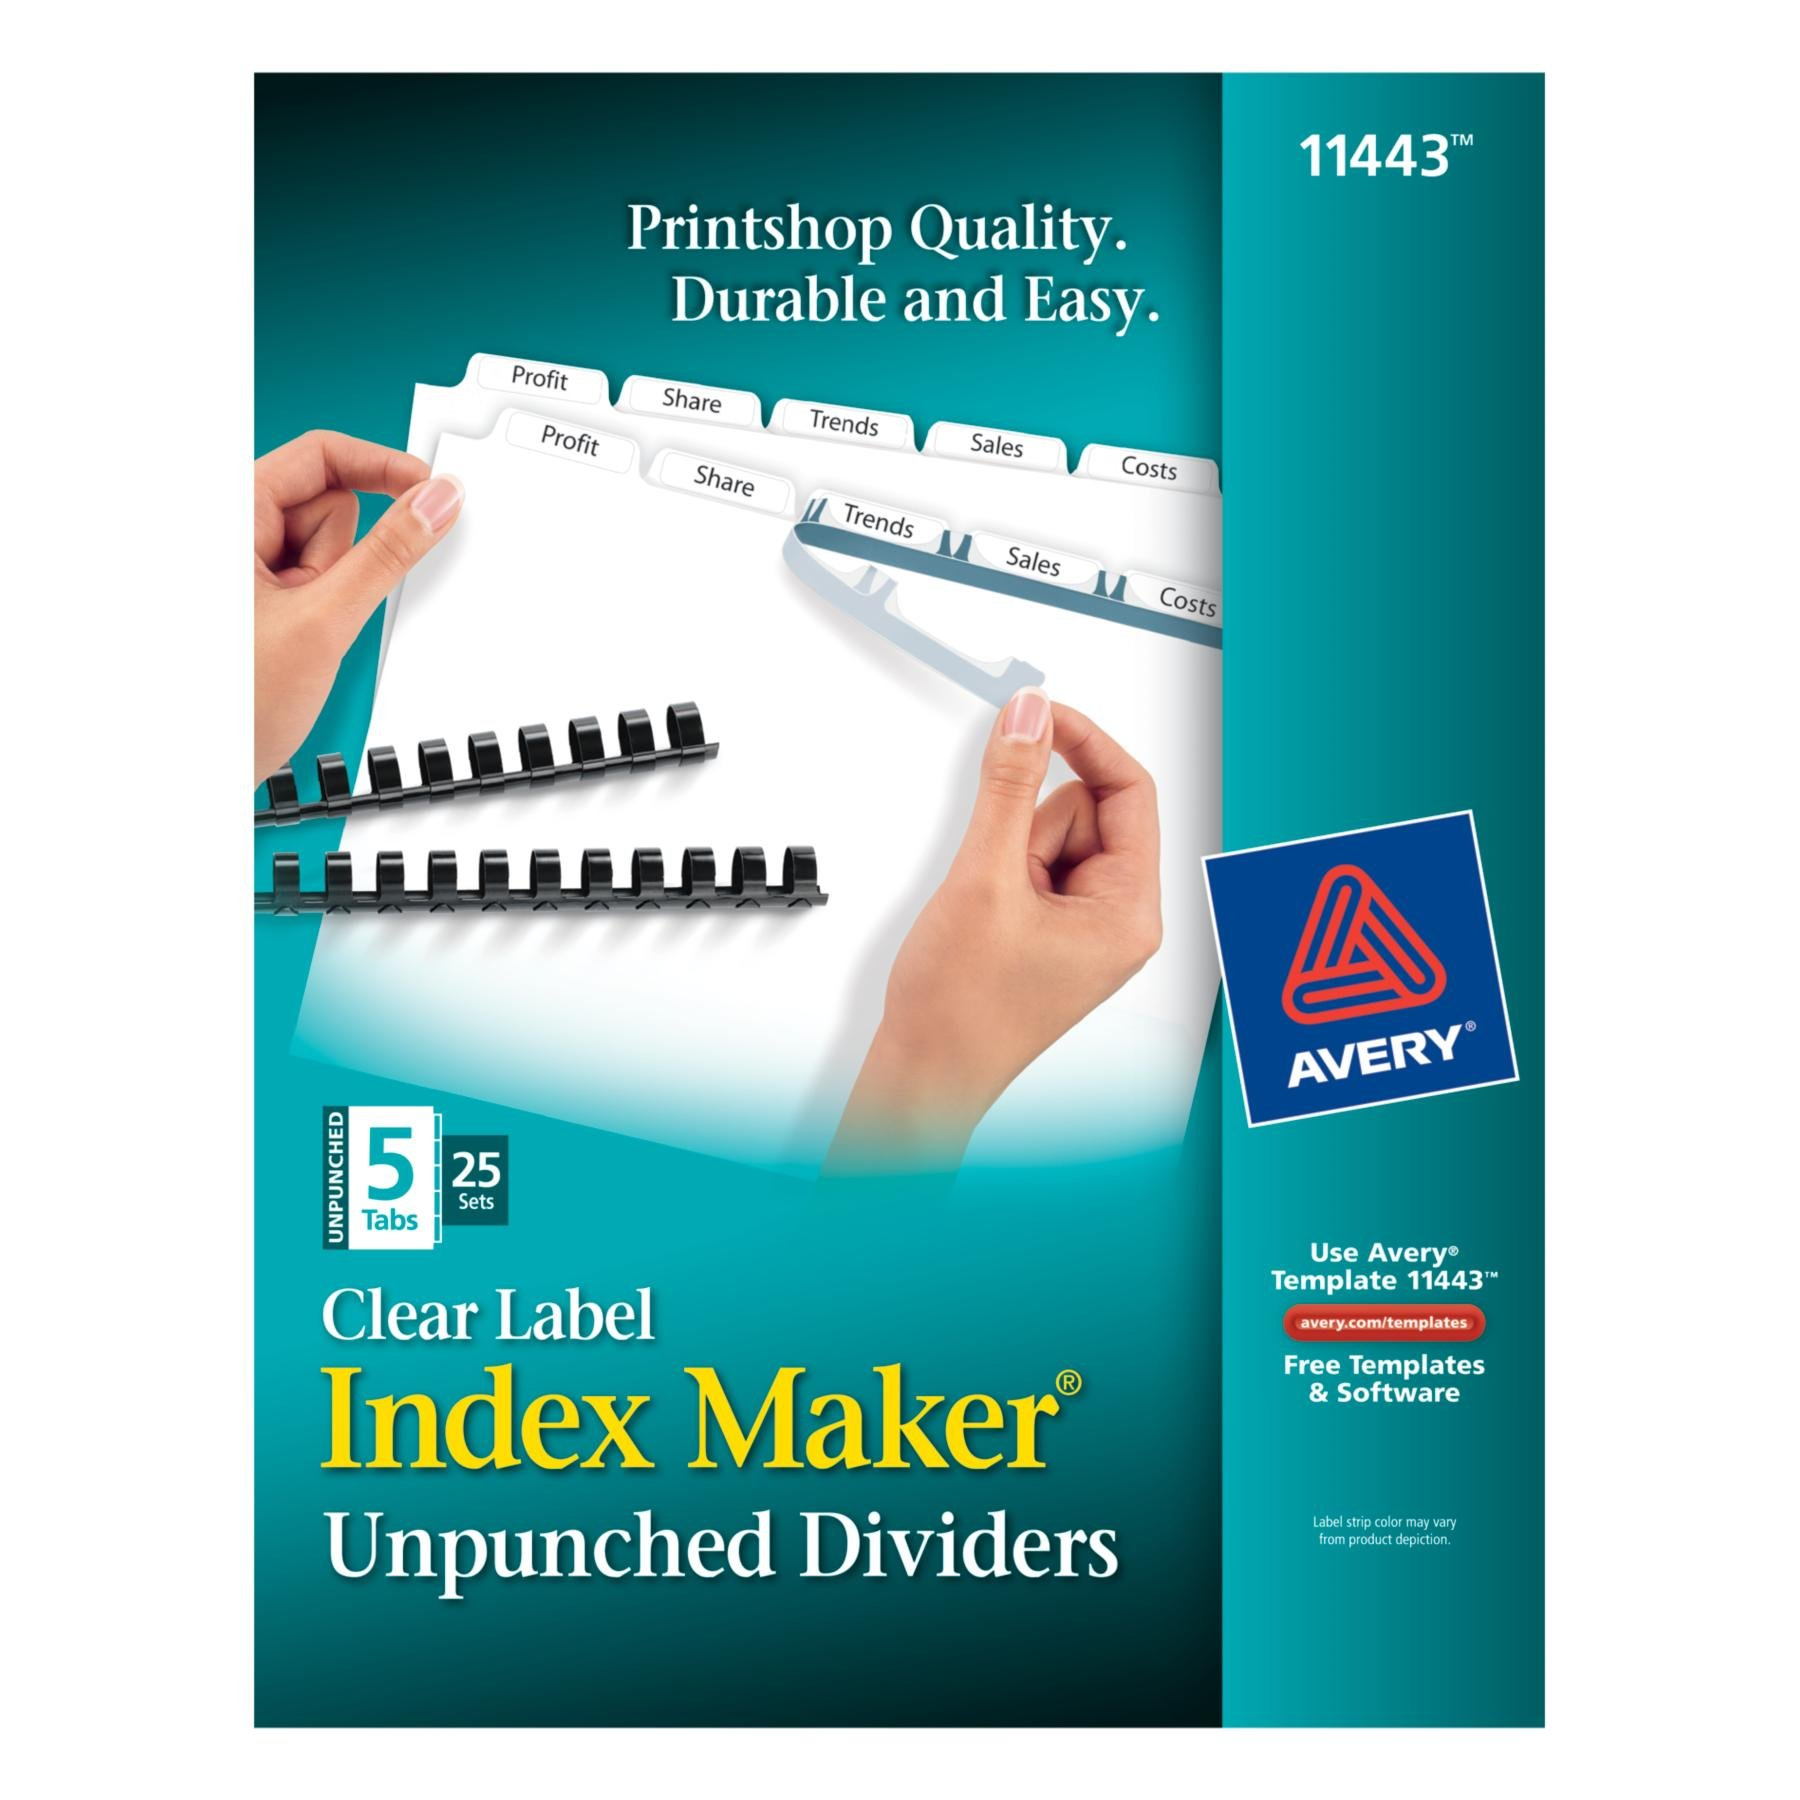 Avery 11443 Print & Apply Clear Label Unpunched Dividers, 5-Tab, Letter (Box of 25 Sets)